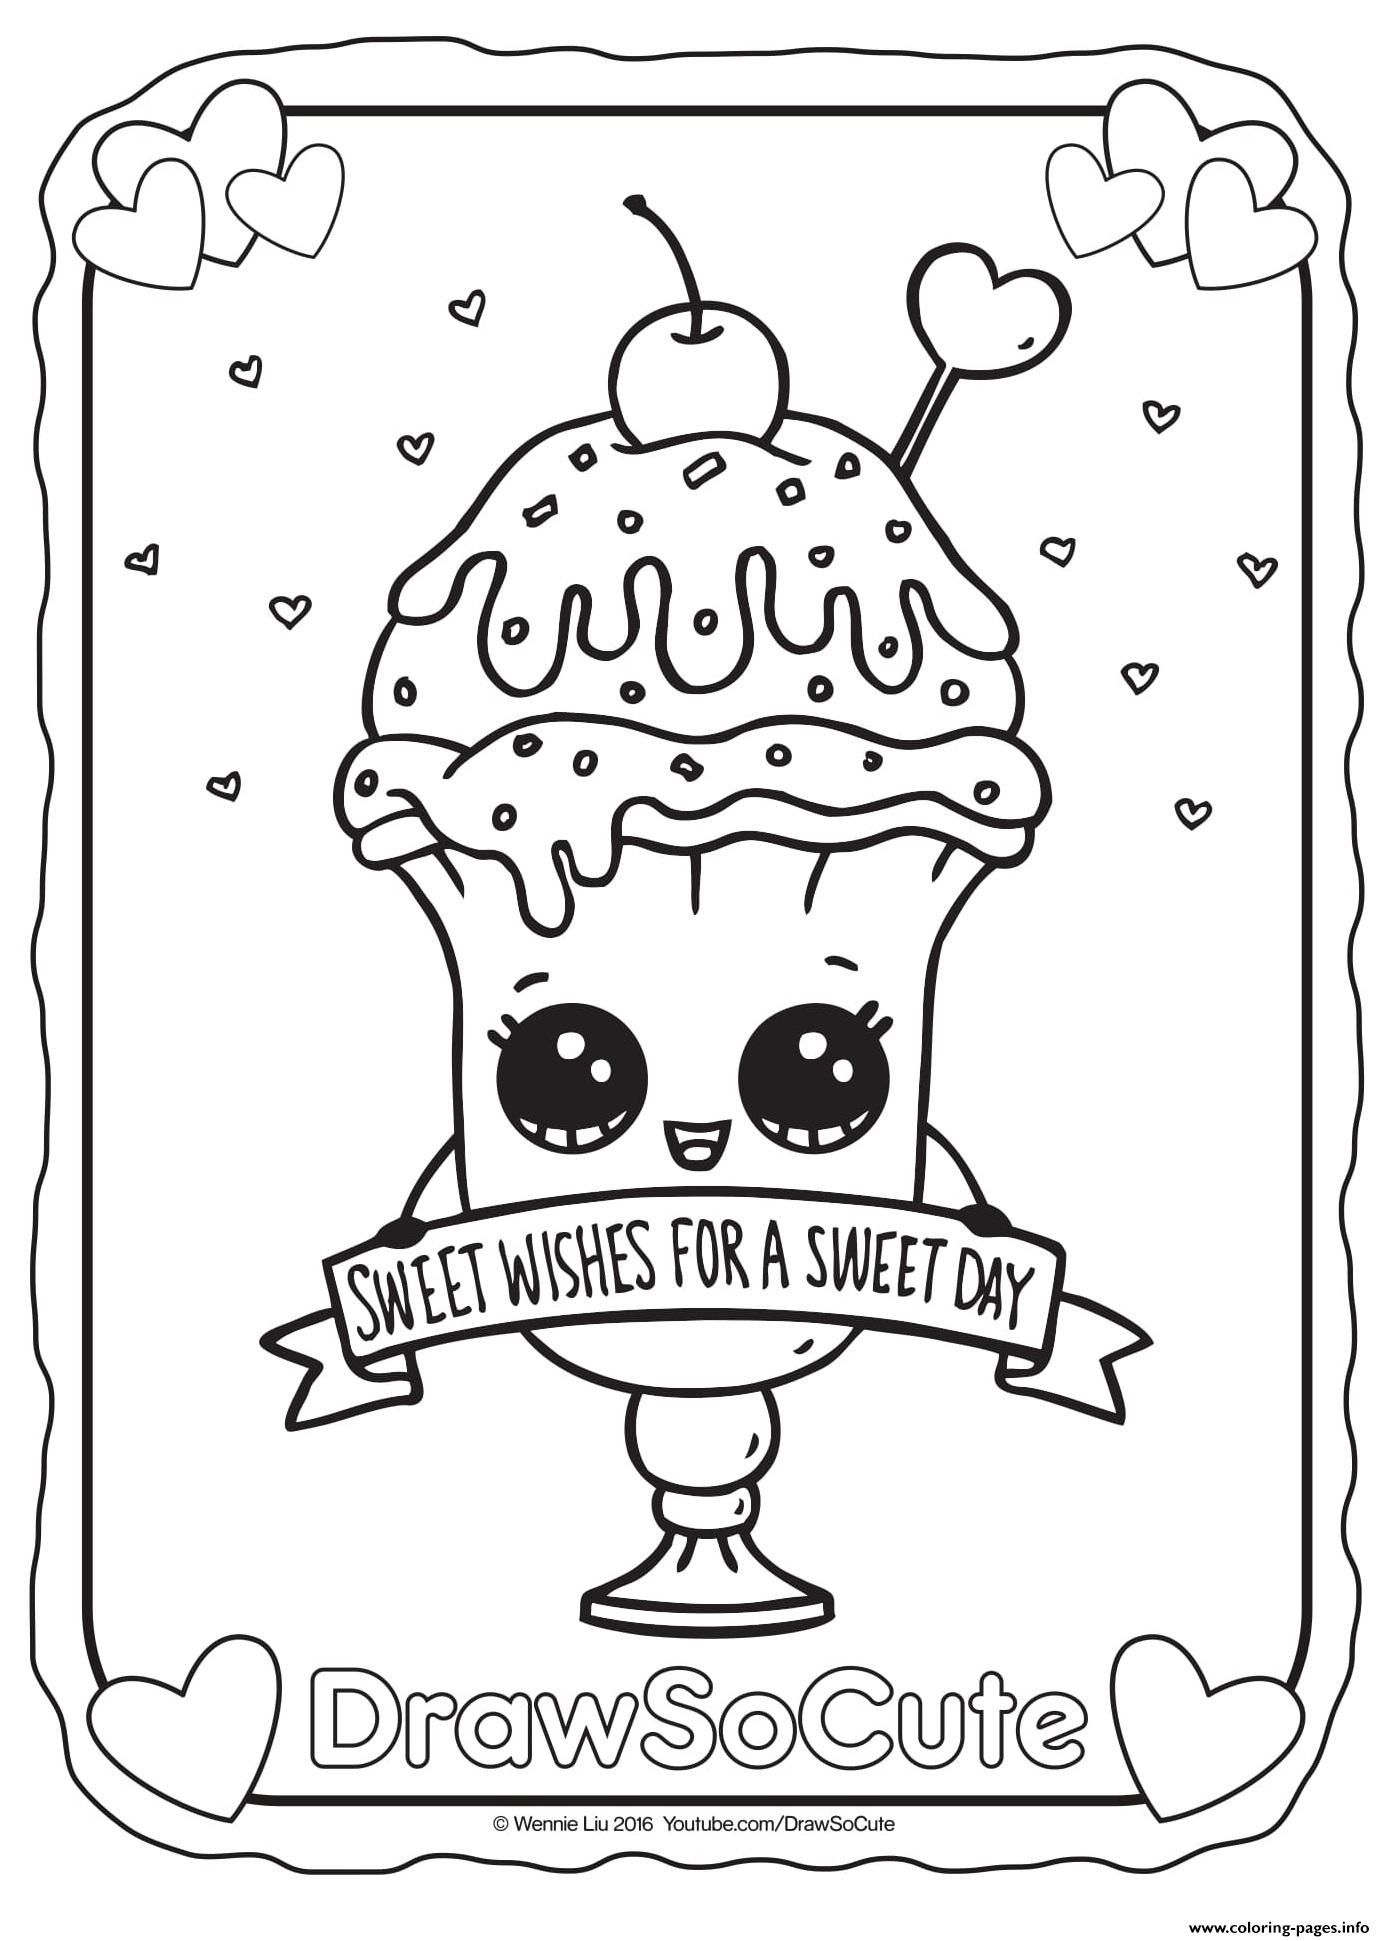 Draw So Cute Coloring Pages 4 D Sundae Coloring Page Image